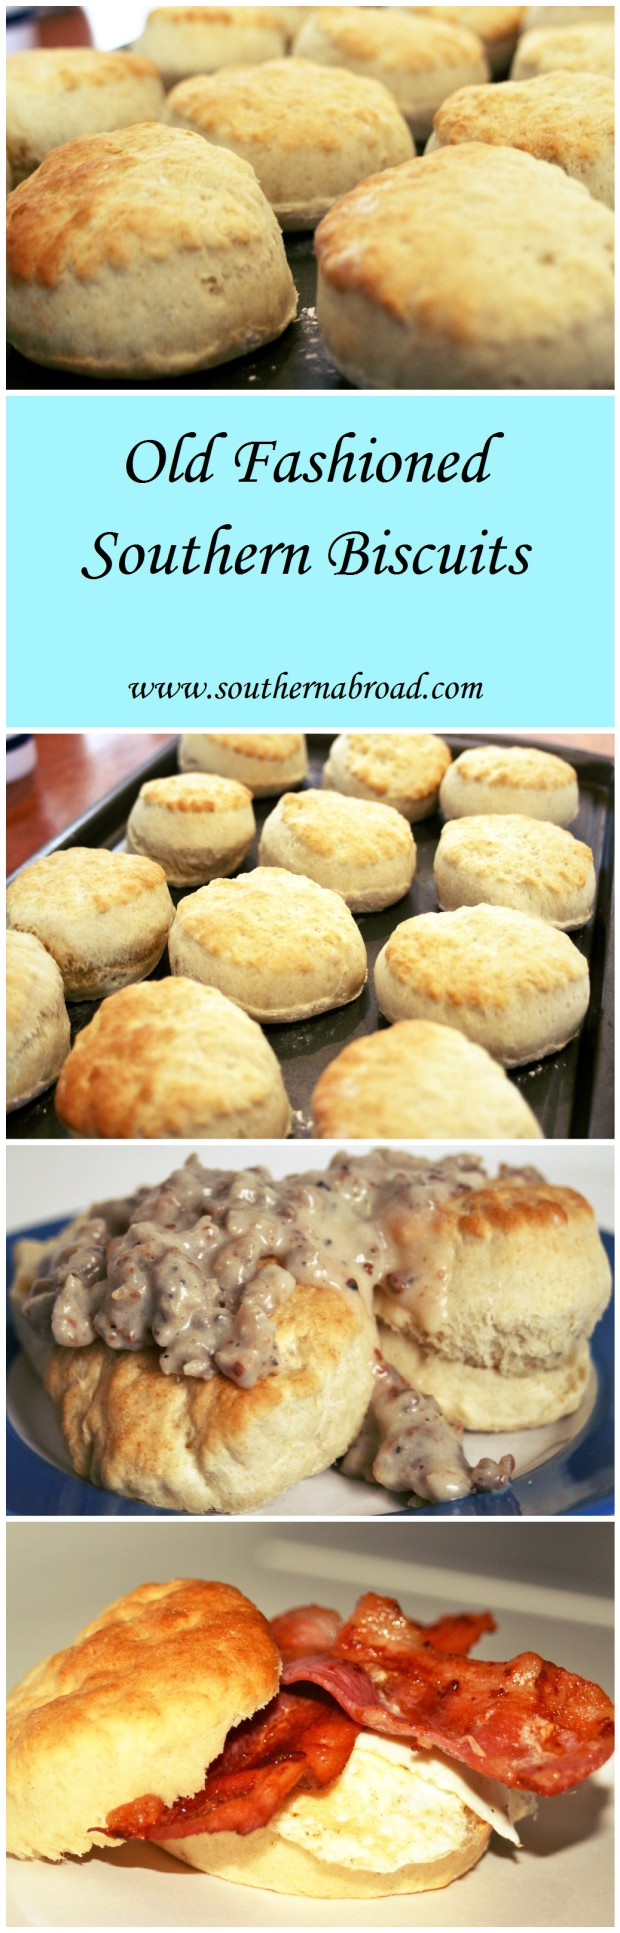 Old Fashioned Southern Biscuits